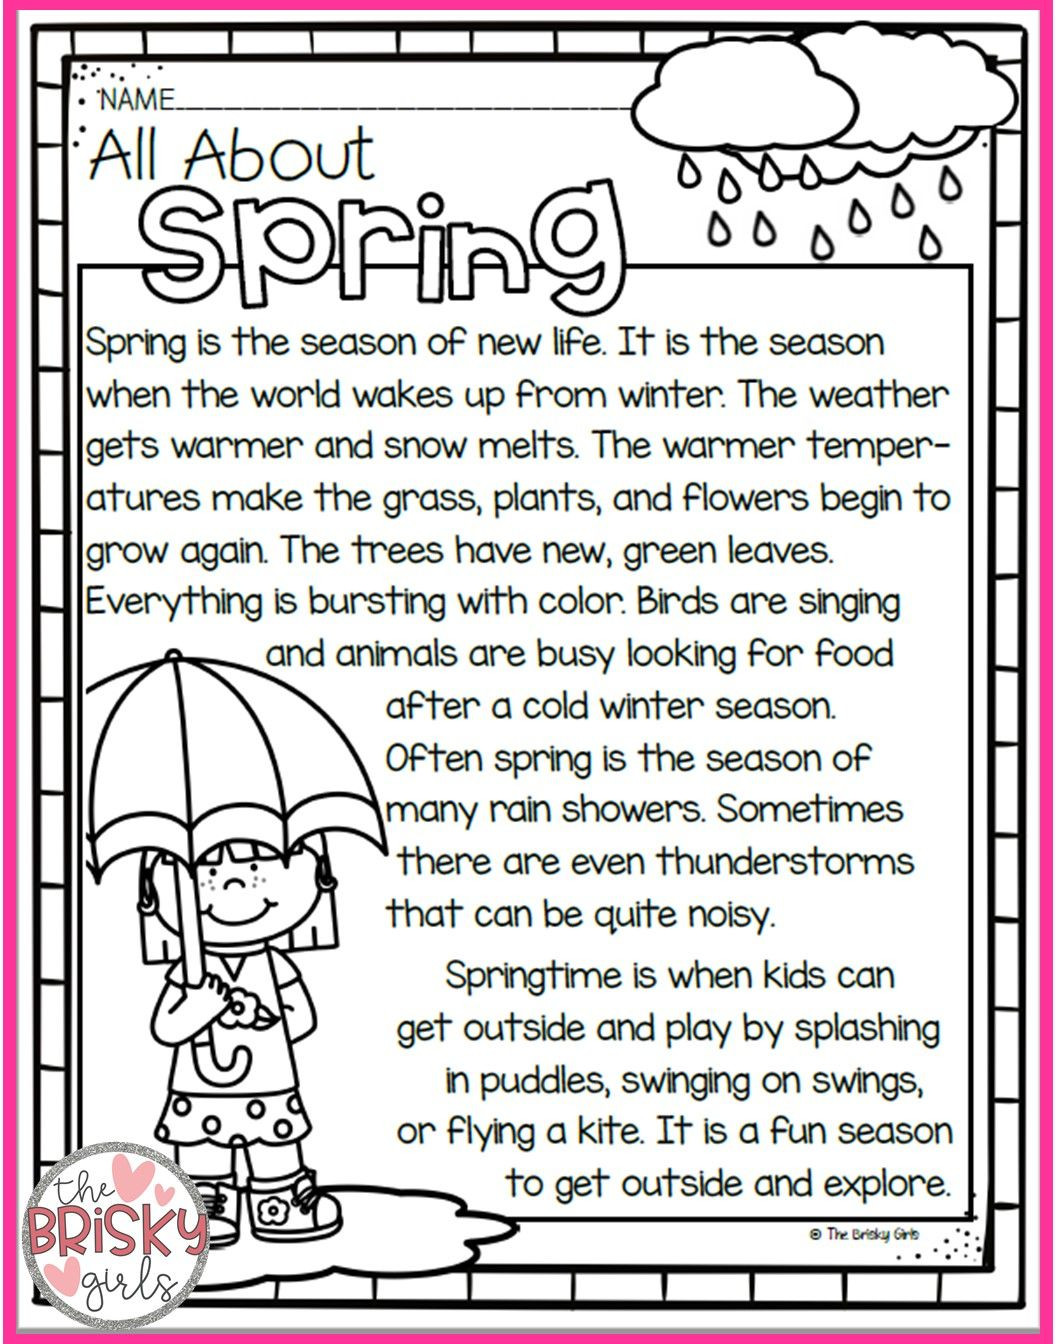 Winter Reading Comprehension Worksheets the Four Seasons Spring Summer Fall Winter Seasons